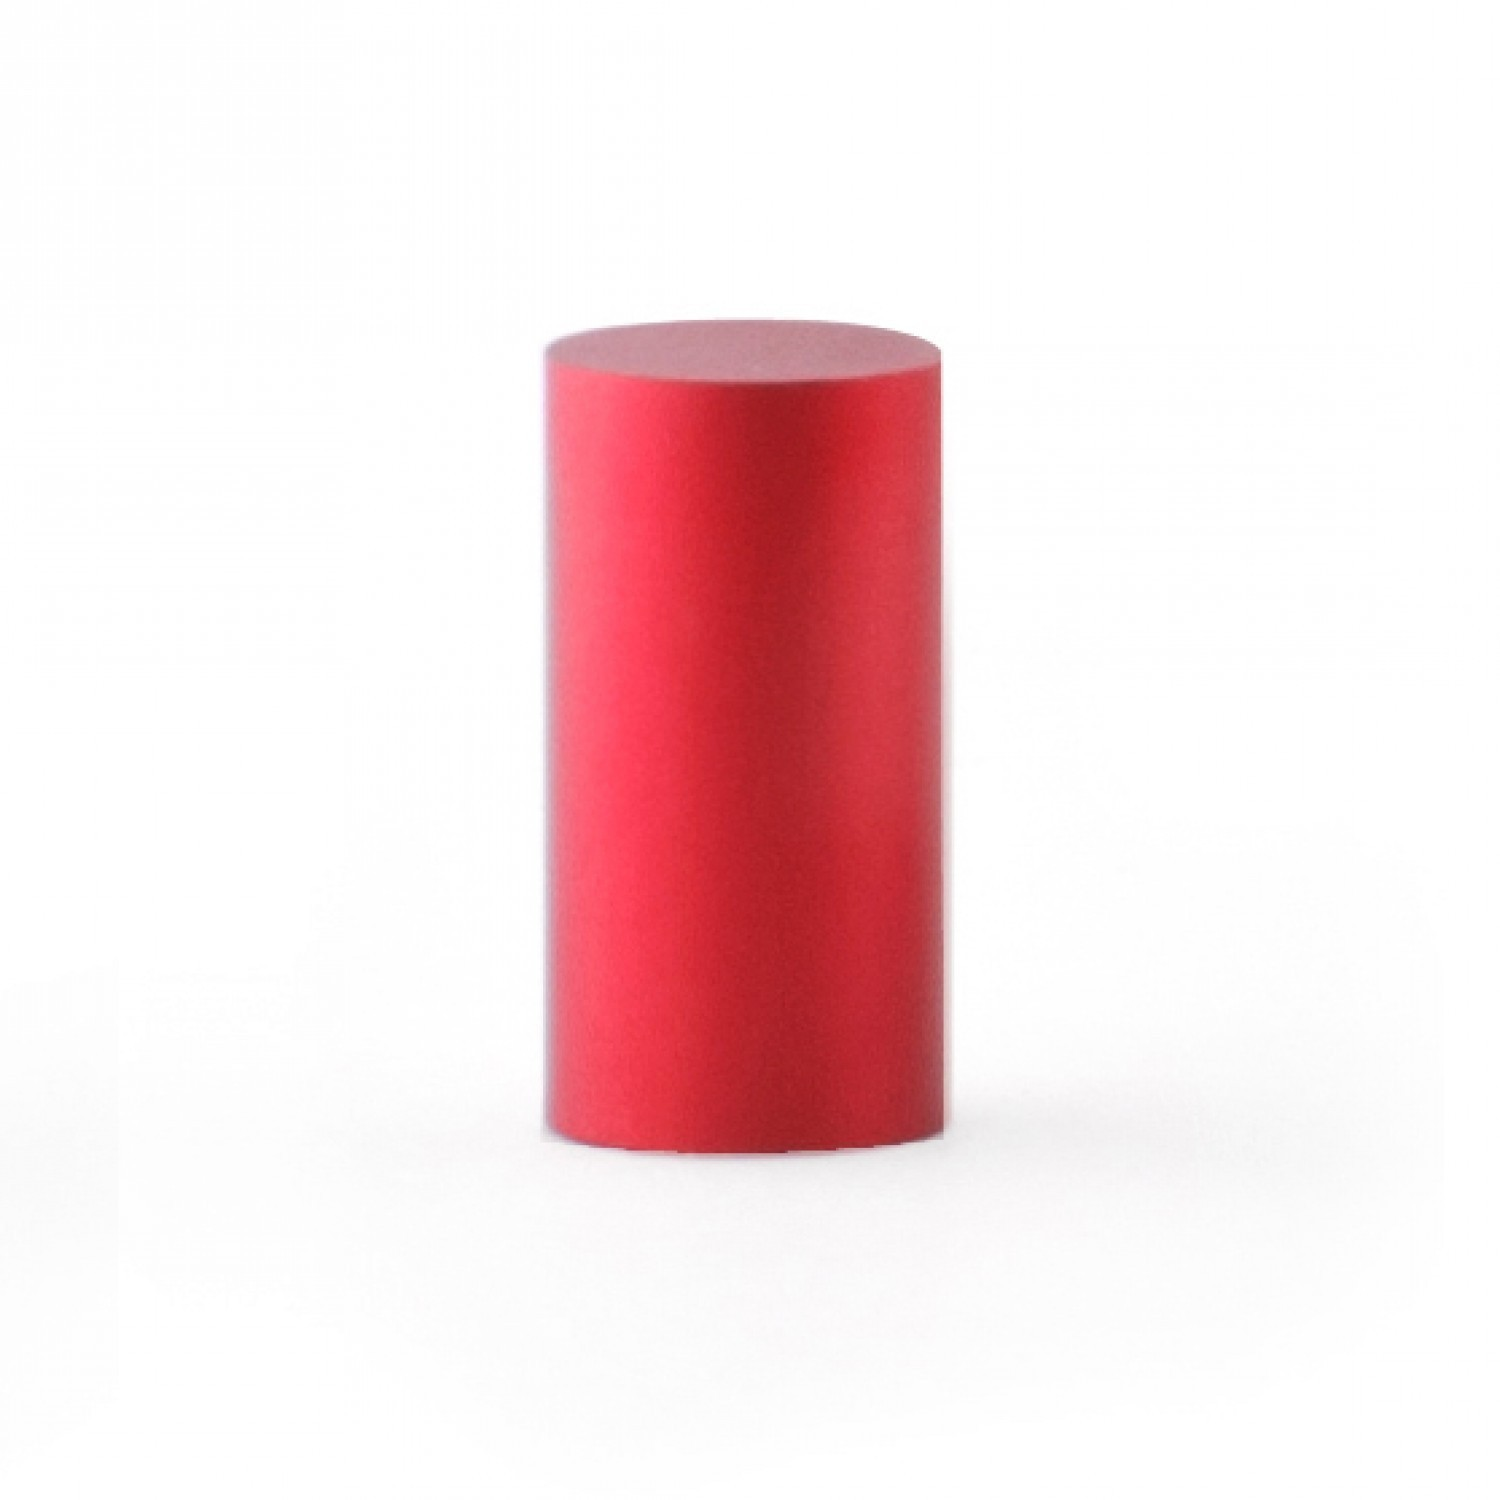 Adonit Jot Touch Replacement Cap rood